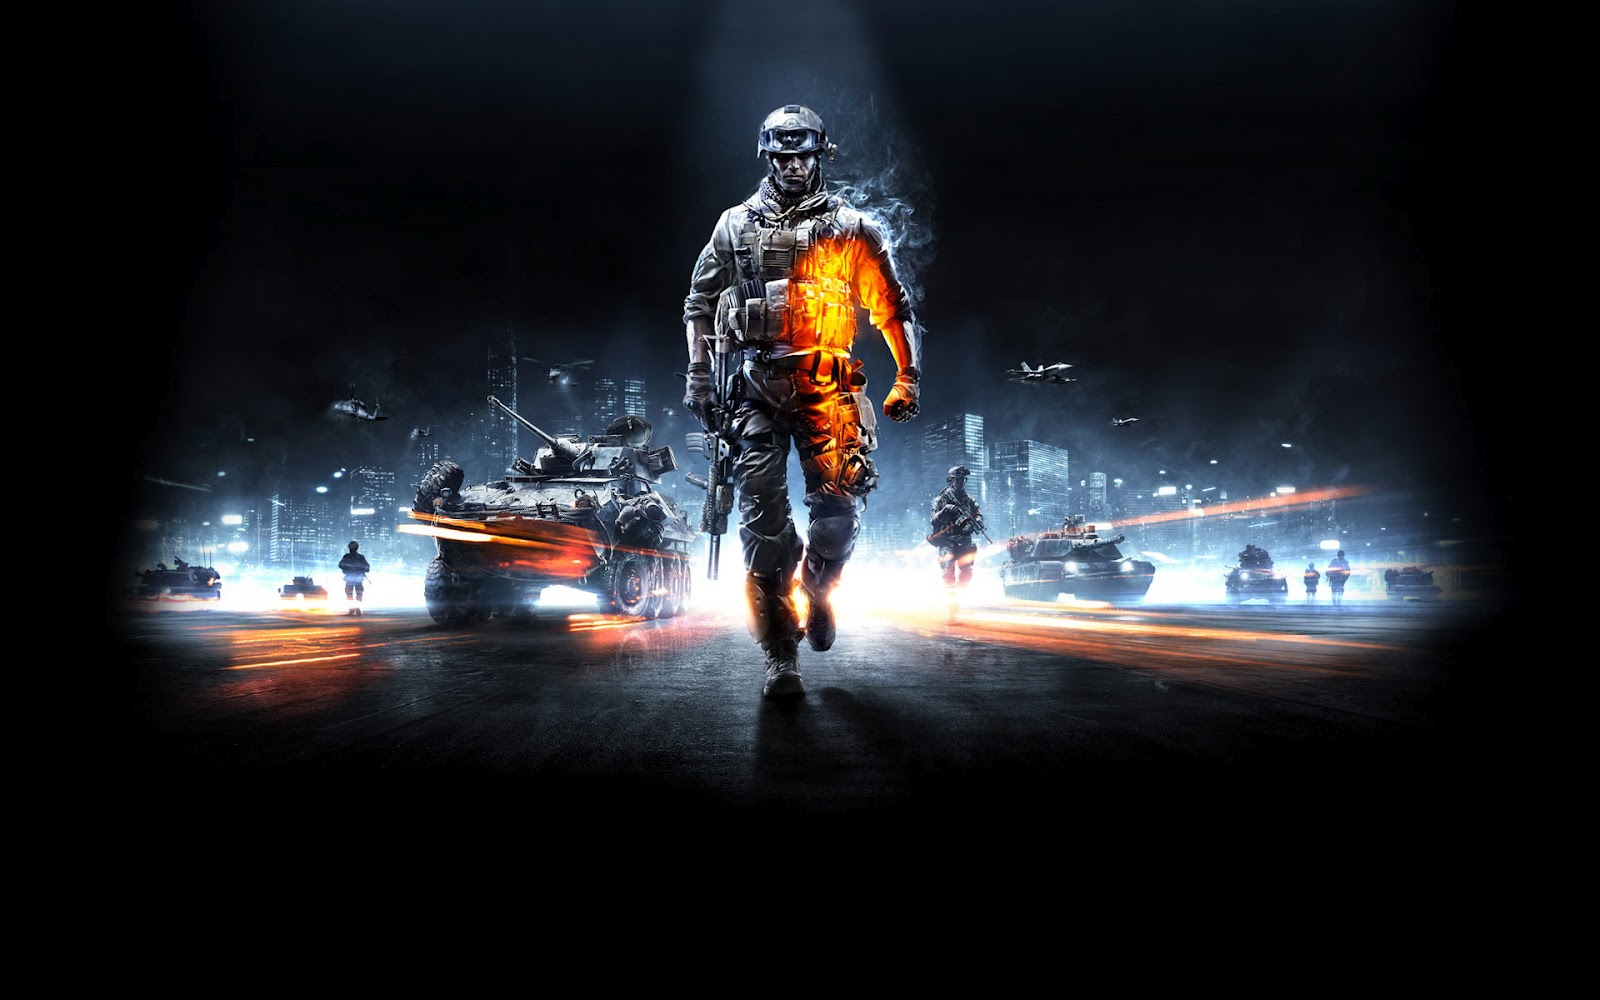 HD Wallpapers Download Download Softwares Game 1600x1000